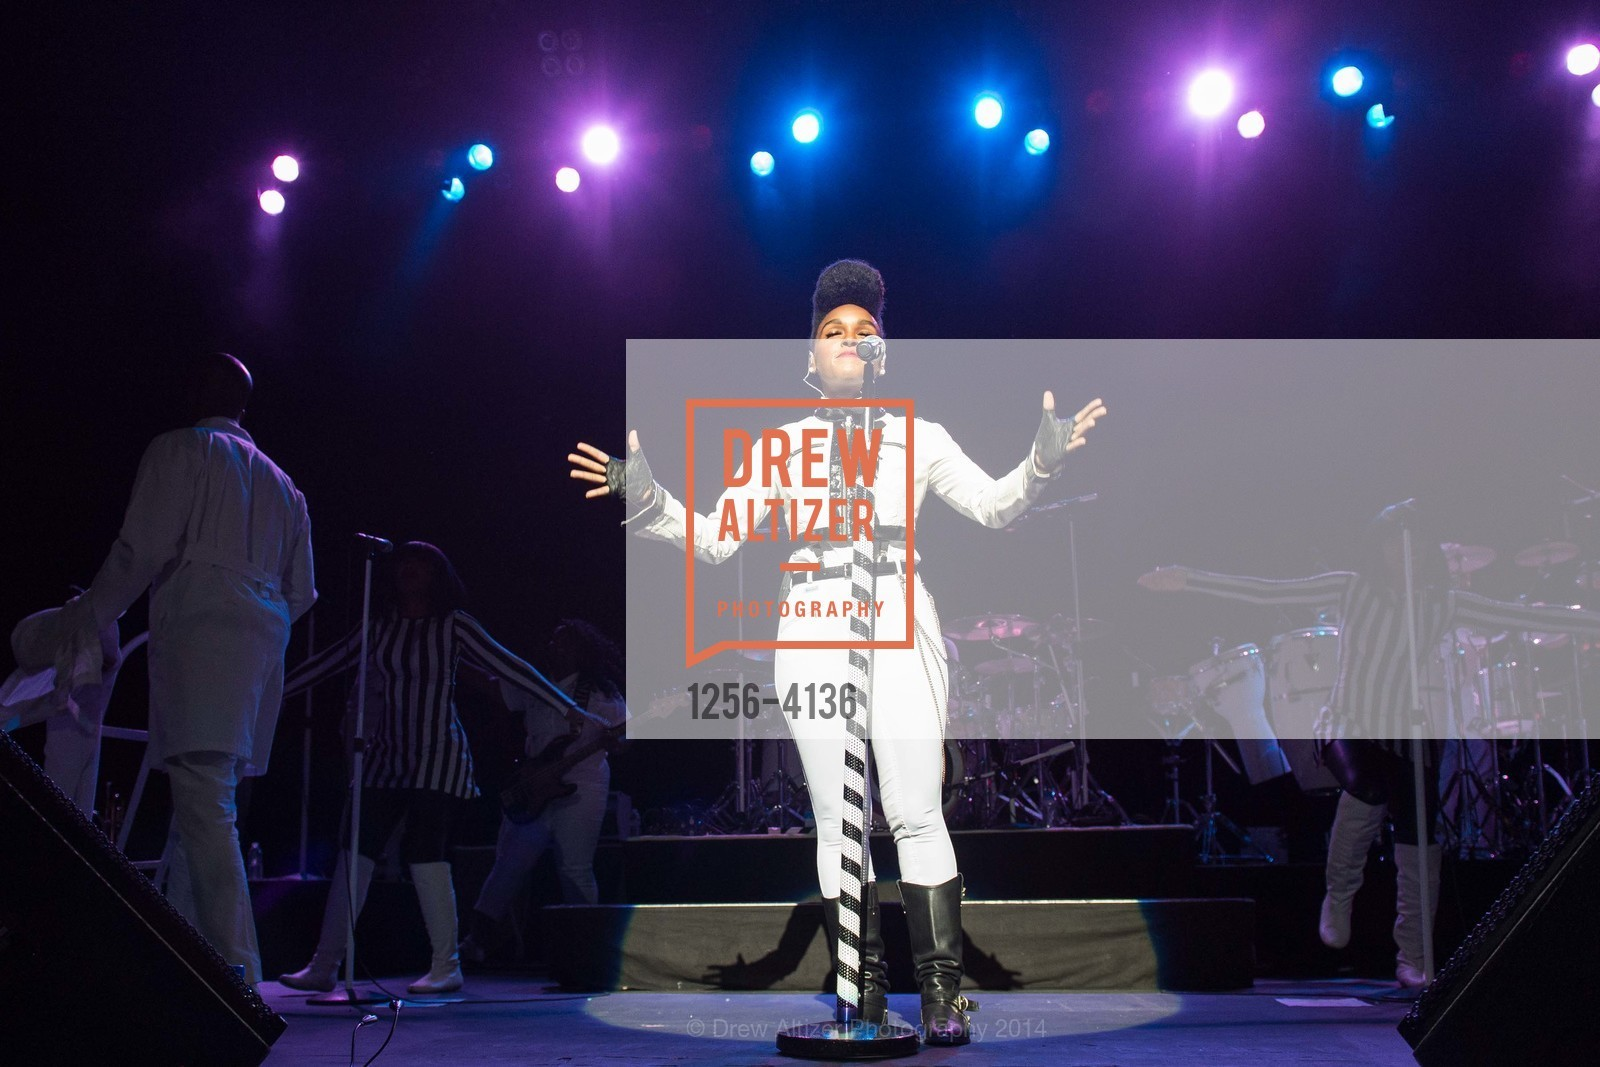 Performance By Janelle Monae, Photo #1256-4136